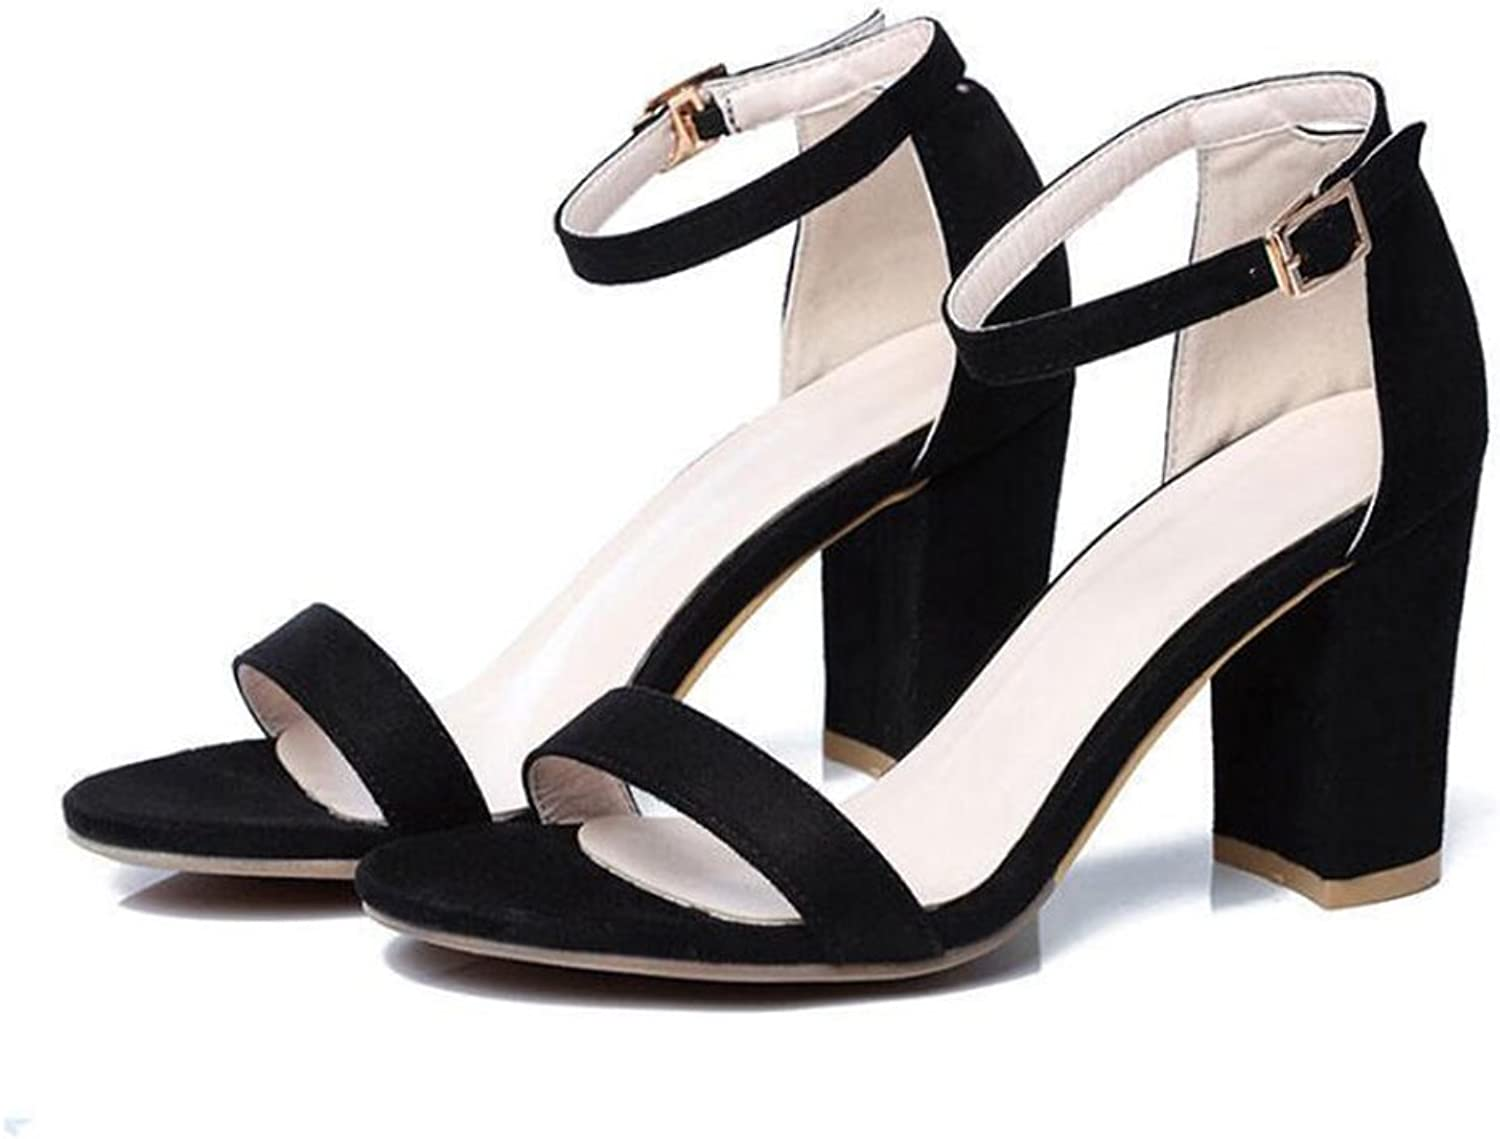 Women's shoes Suede 2018 Summer Basic Pump Heels Buckle Open Toe for Casual Sandals